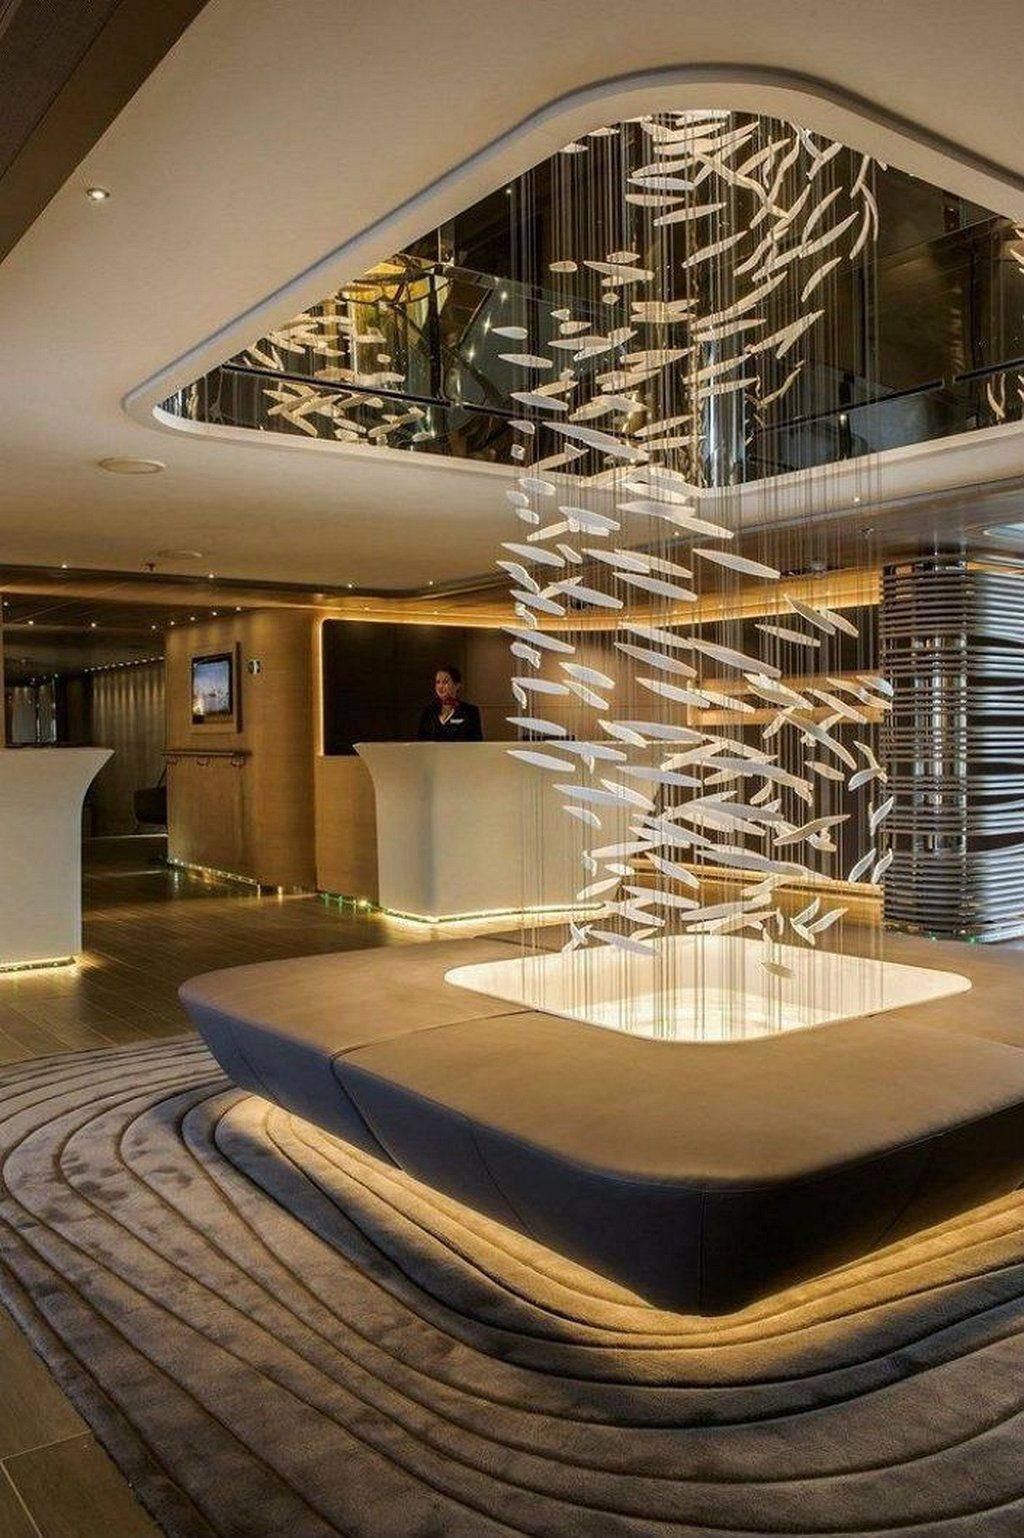 Lighting ideas can be the focus of your hotel interior design. Well chosen luxury or modern lamp